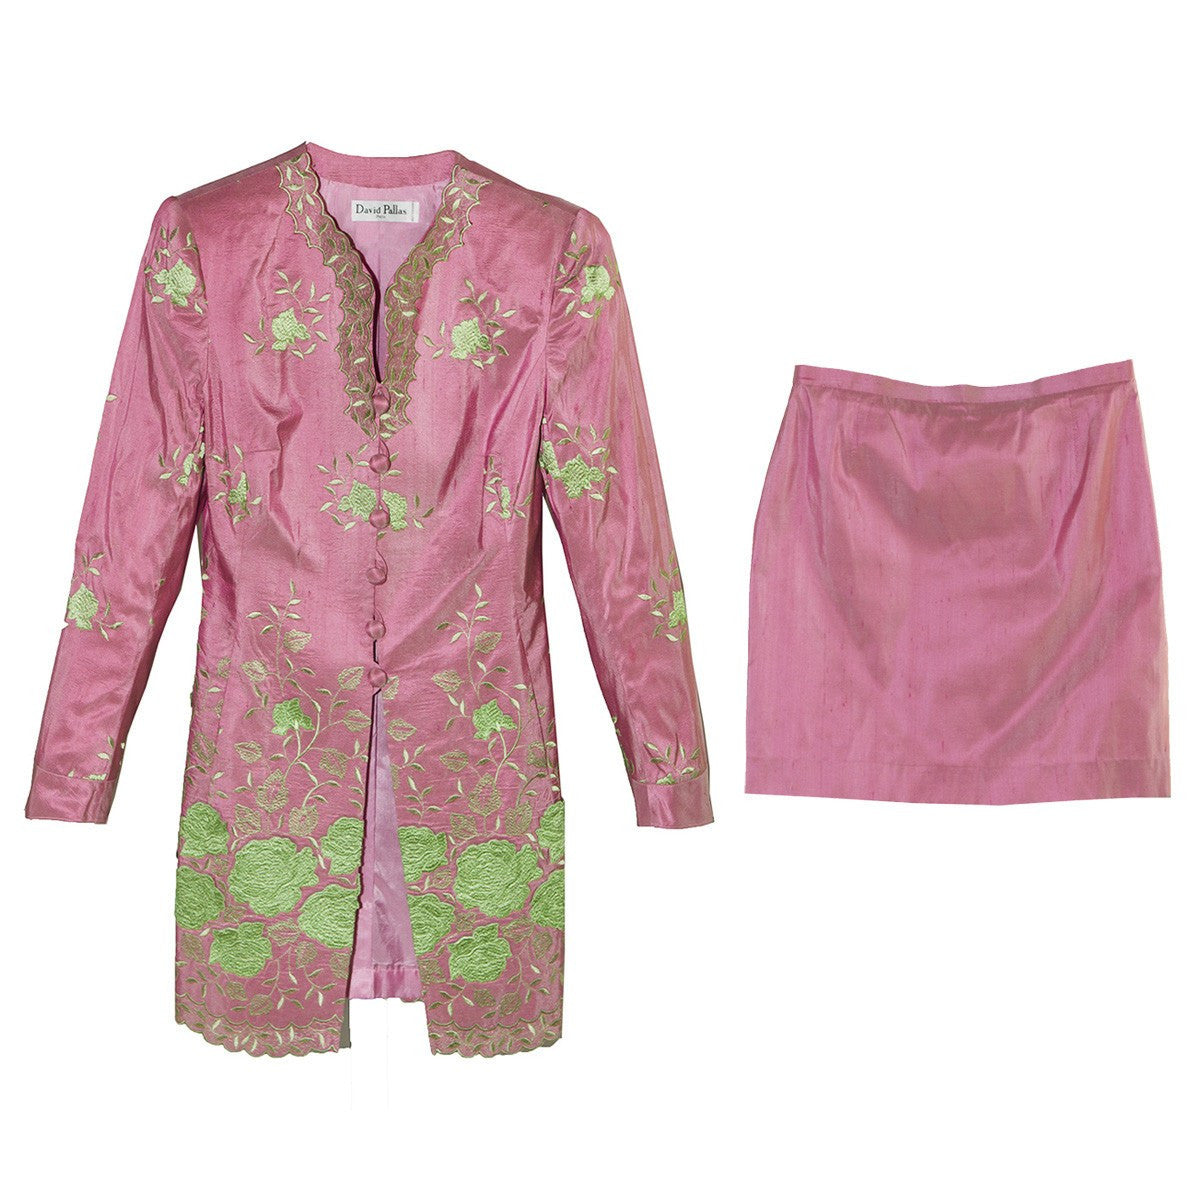 David Pallas Pink Silk Suit, Green Floral Embroidery